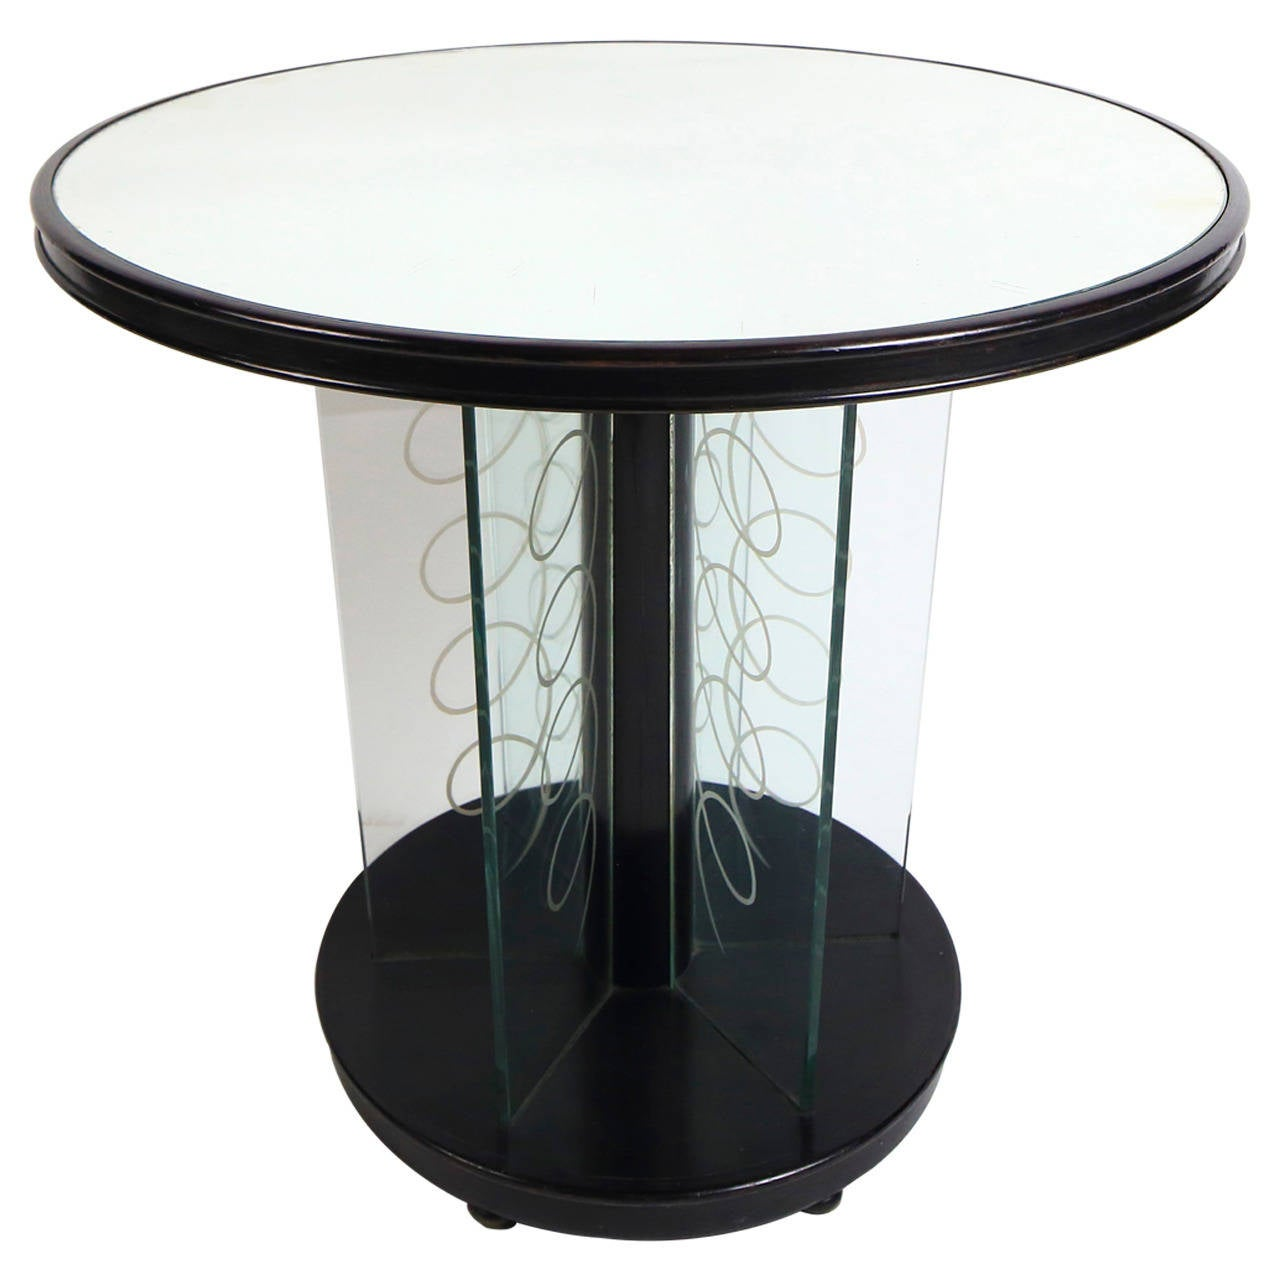 Art deco side table wood and glass by brusotti milano italy art deco side table wood and glass by brusotti milano italy1930s geotapseo Images